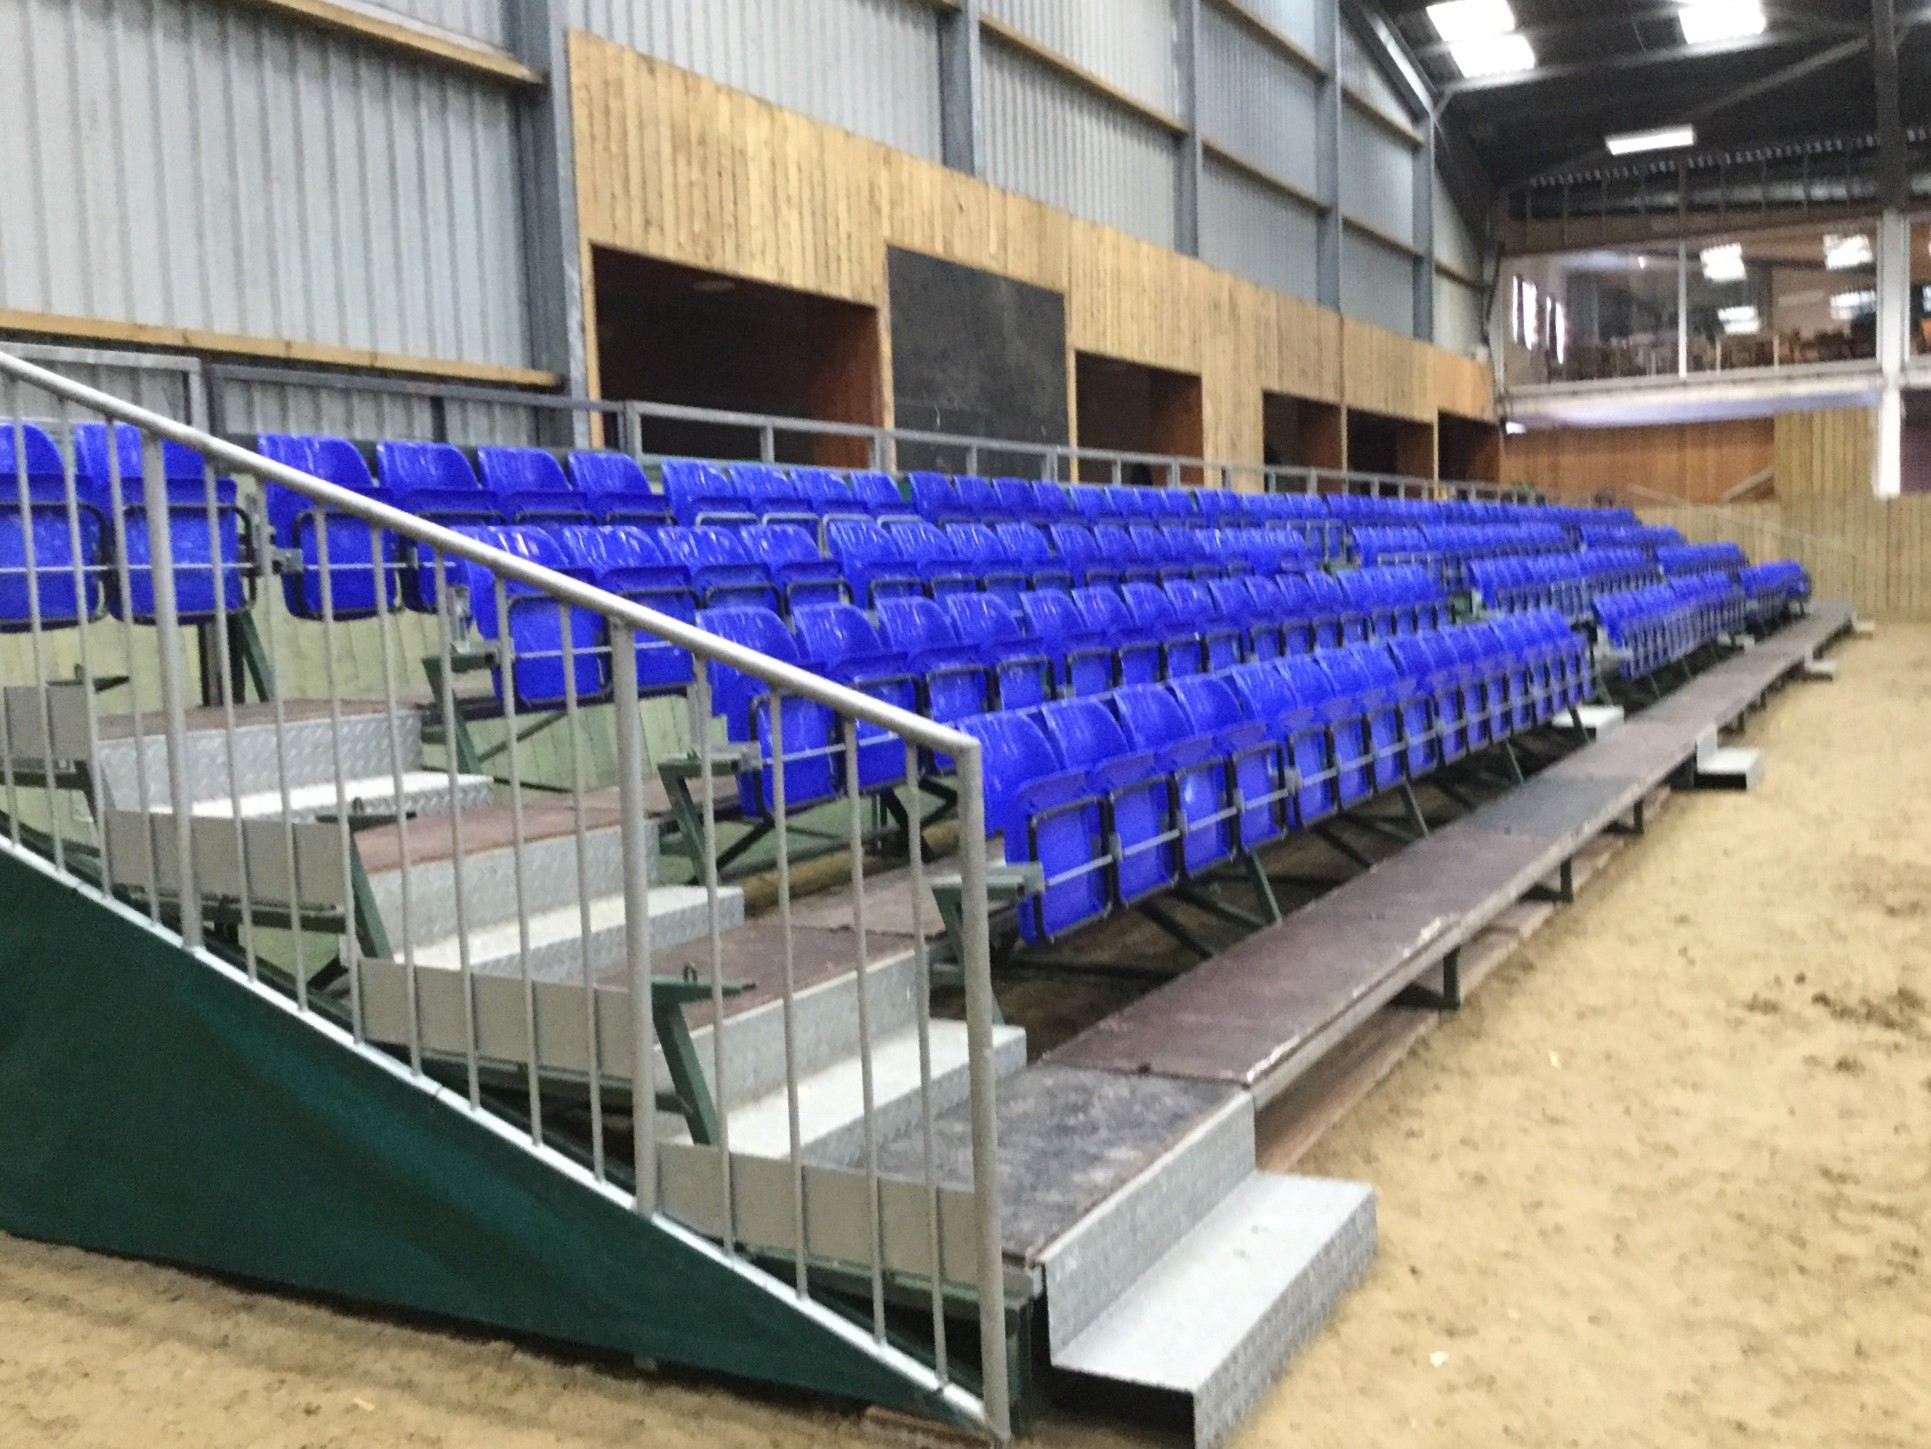 Barriers, Seating, Event Equipment and Services UK and Ireland